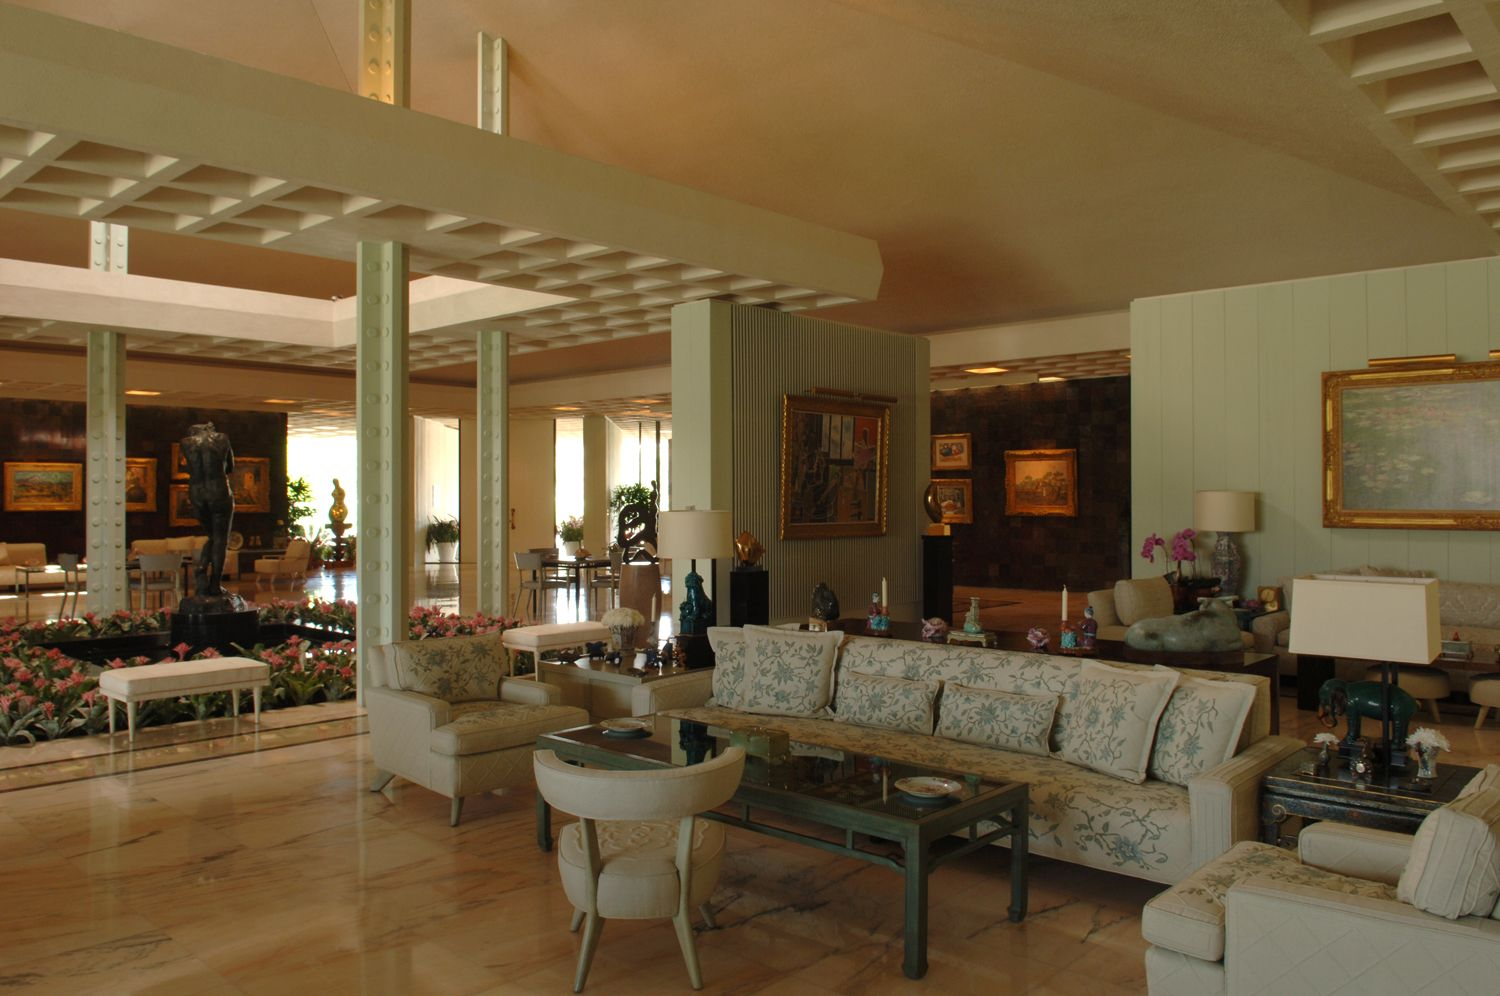 sunnylands interiors - Google Search